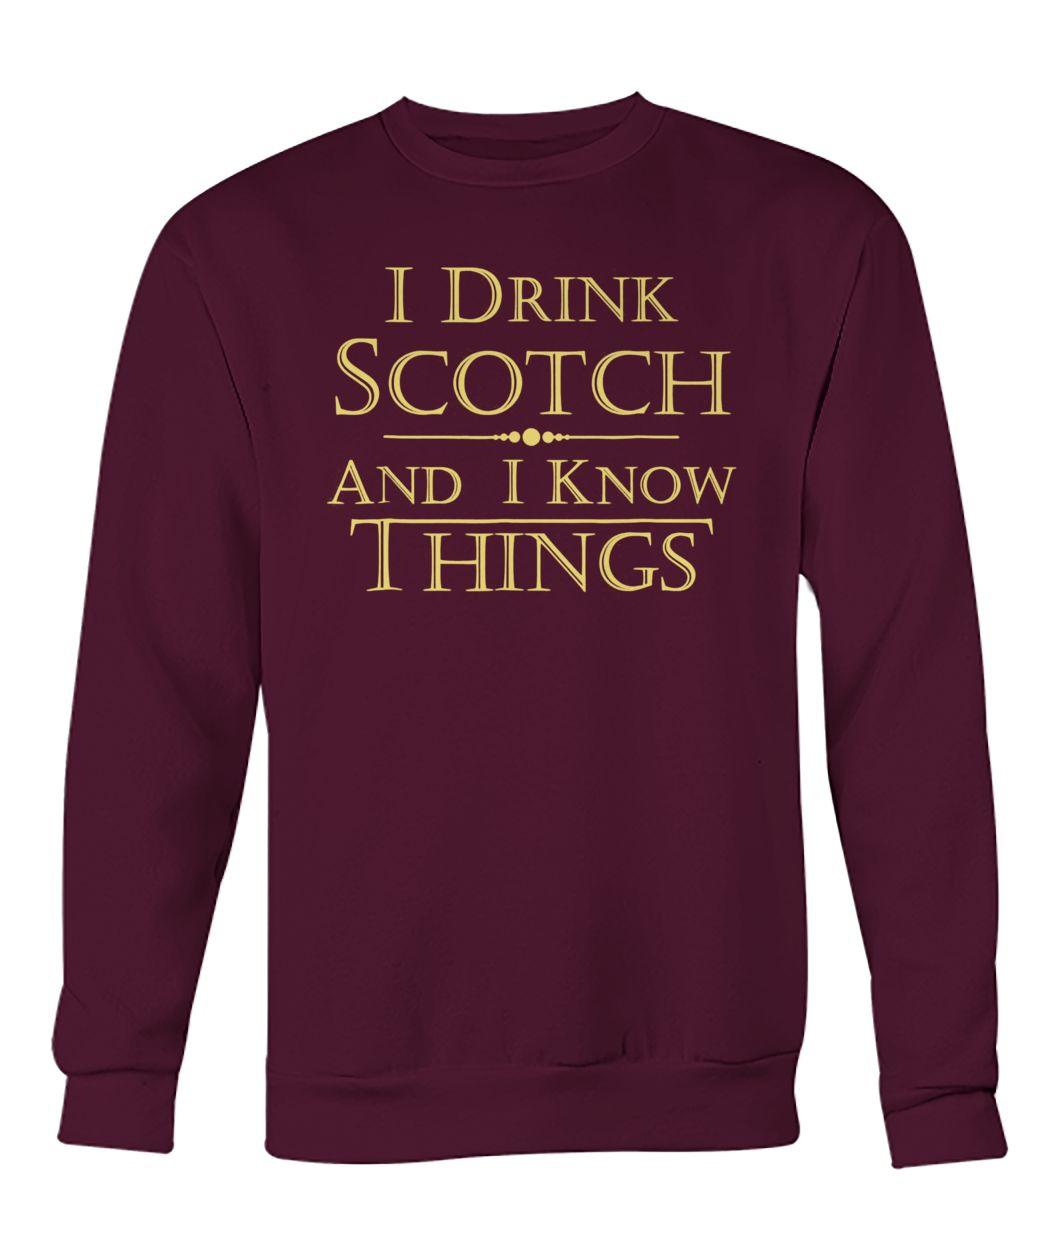 I drink scotch and I know things game of thrones crew neck sweatshirt